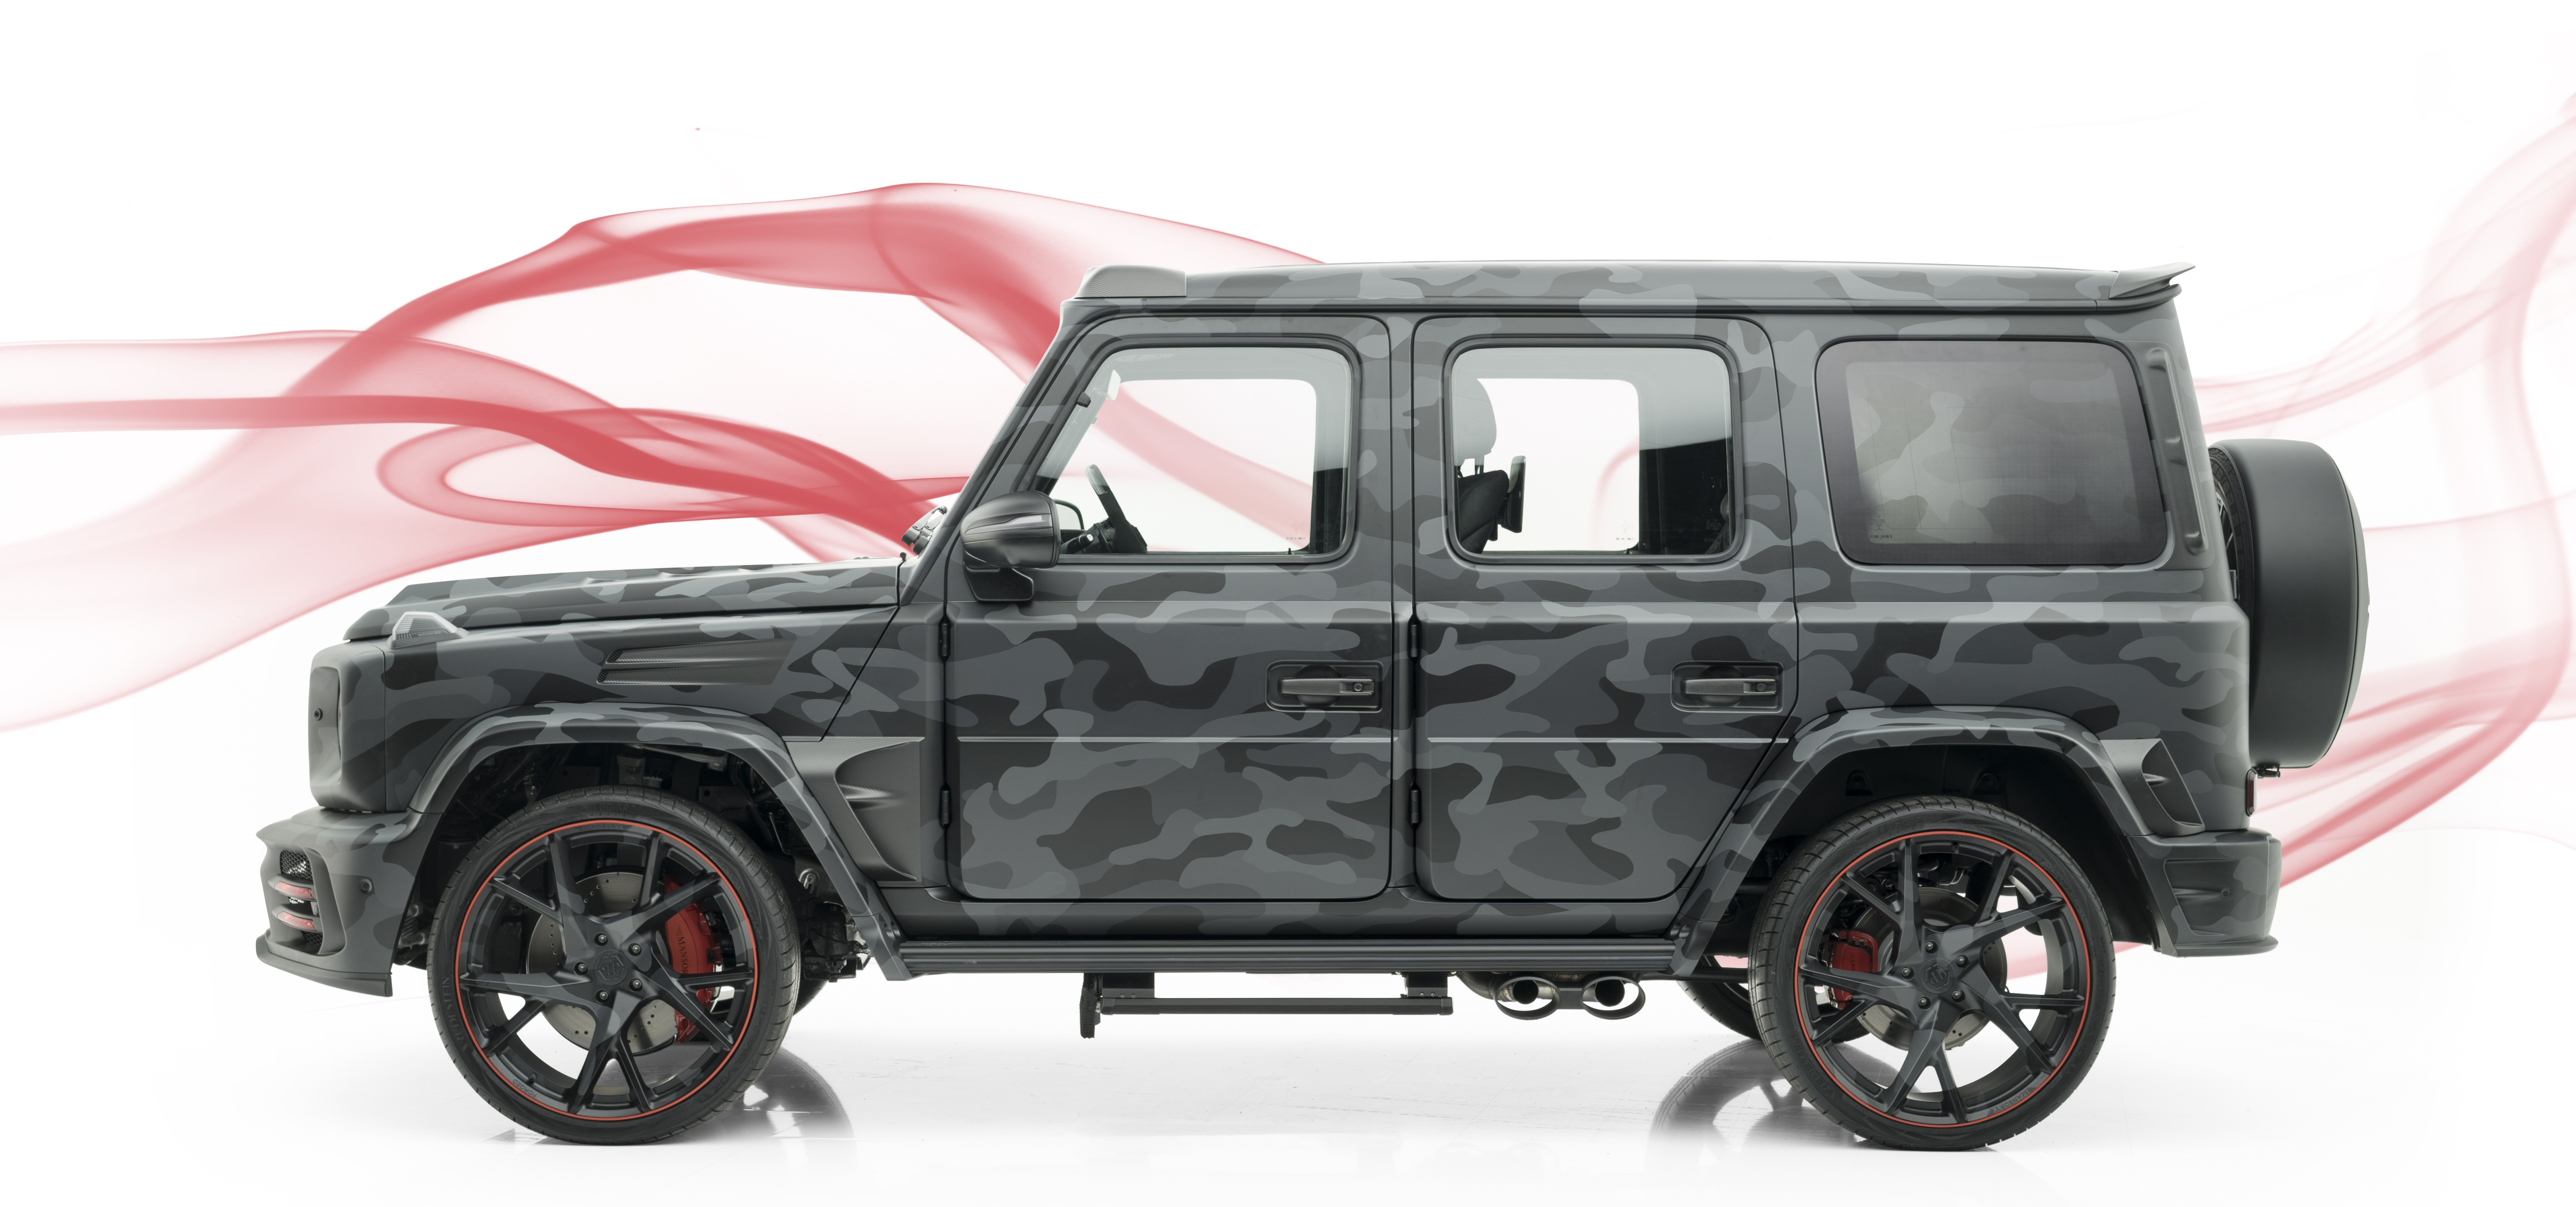 mansory_mercedes-benz_g-class_star_trooper_05.jpg